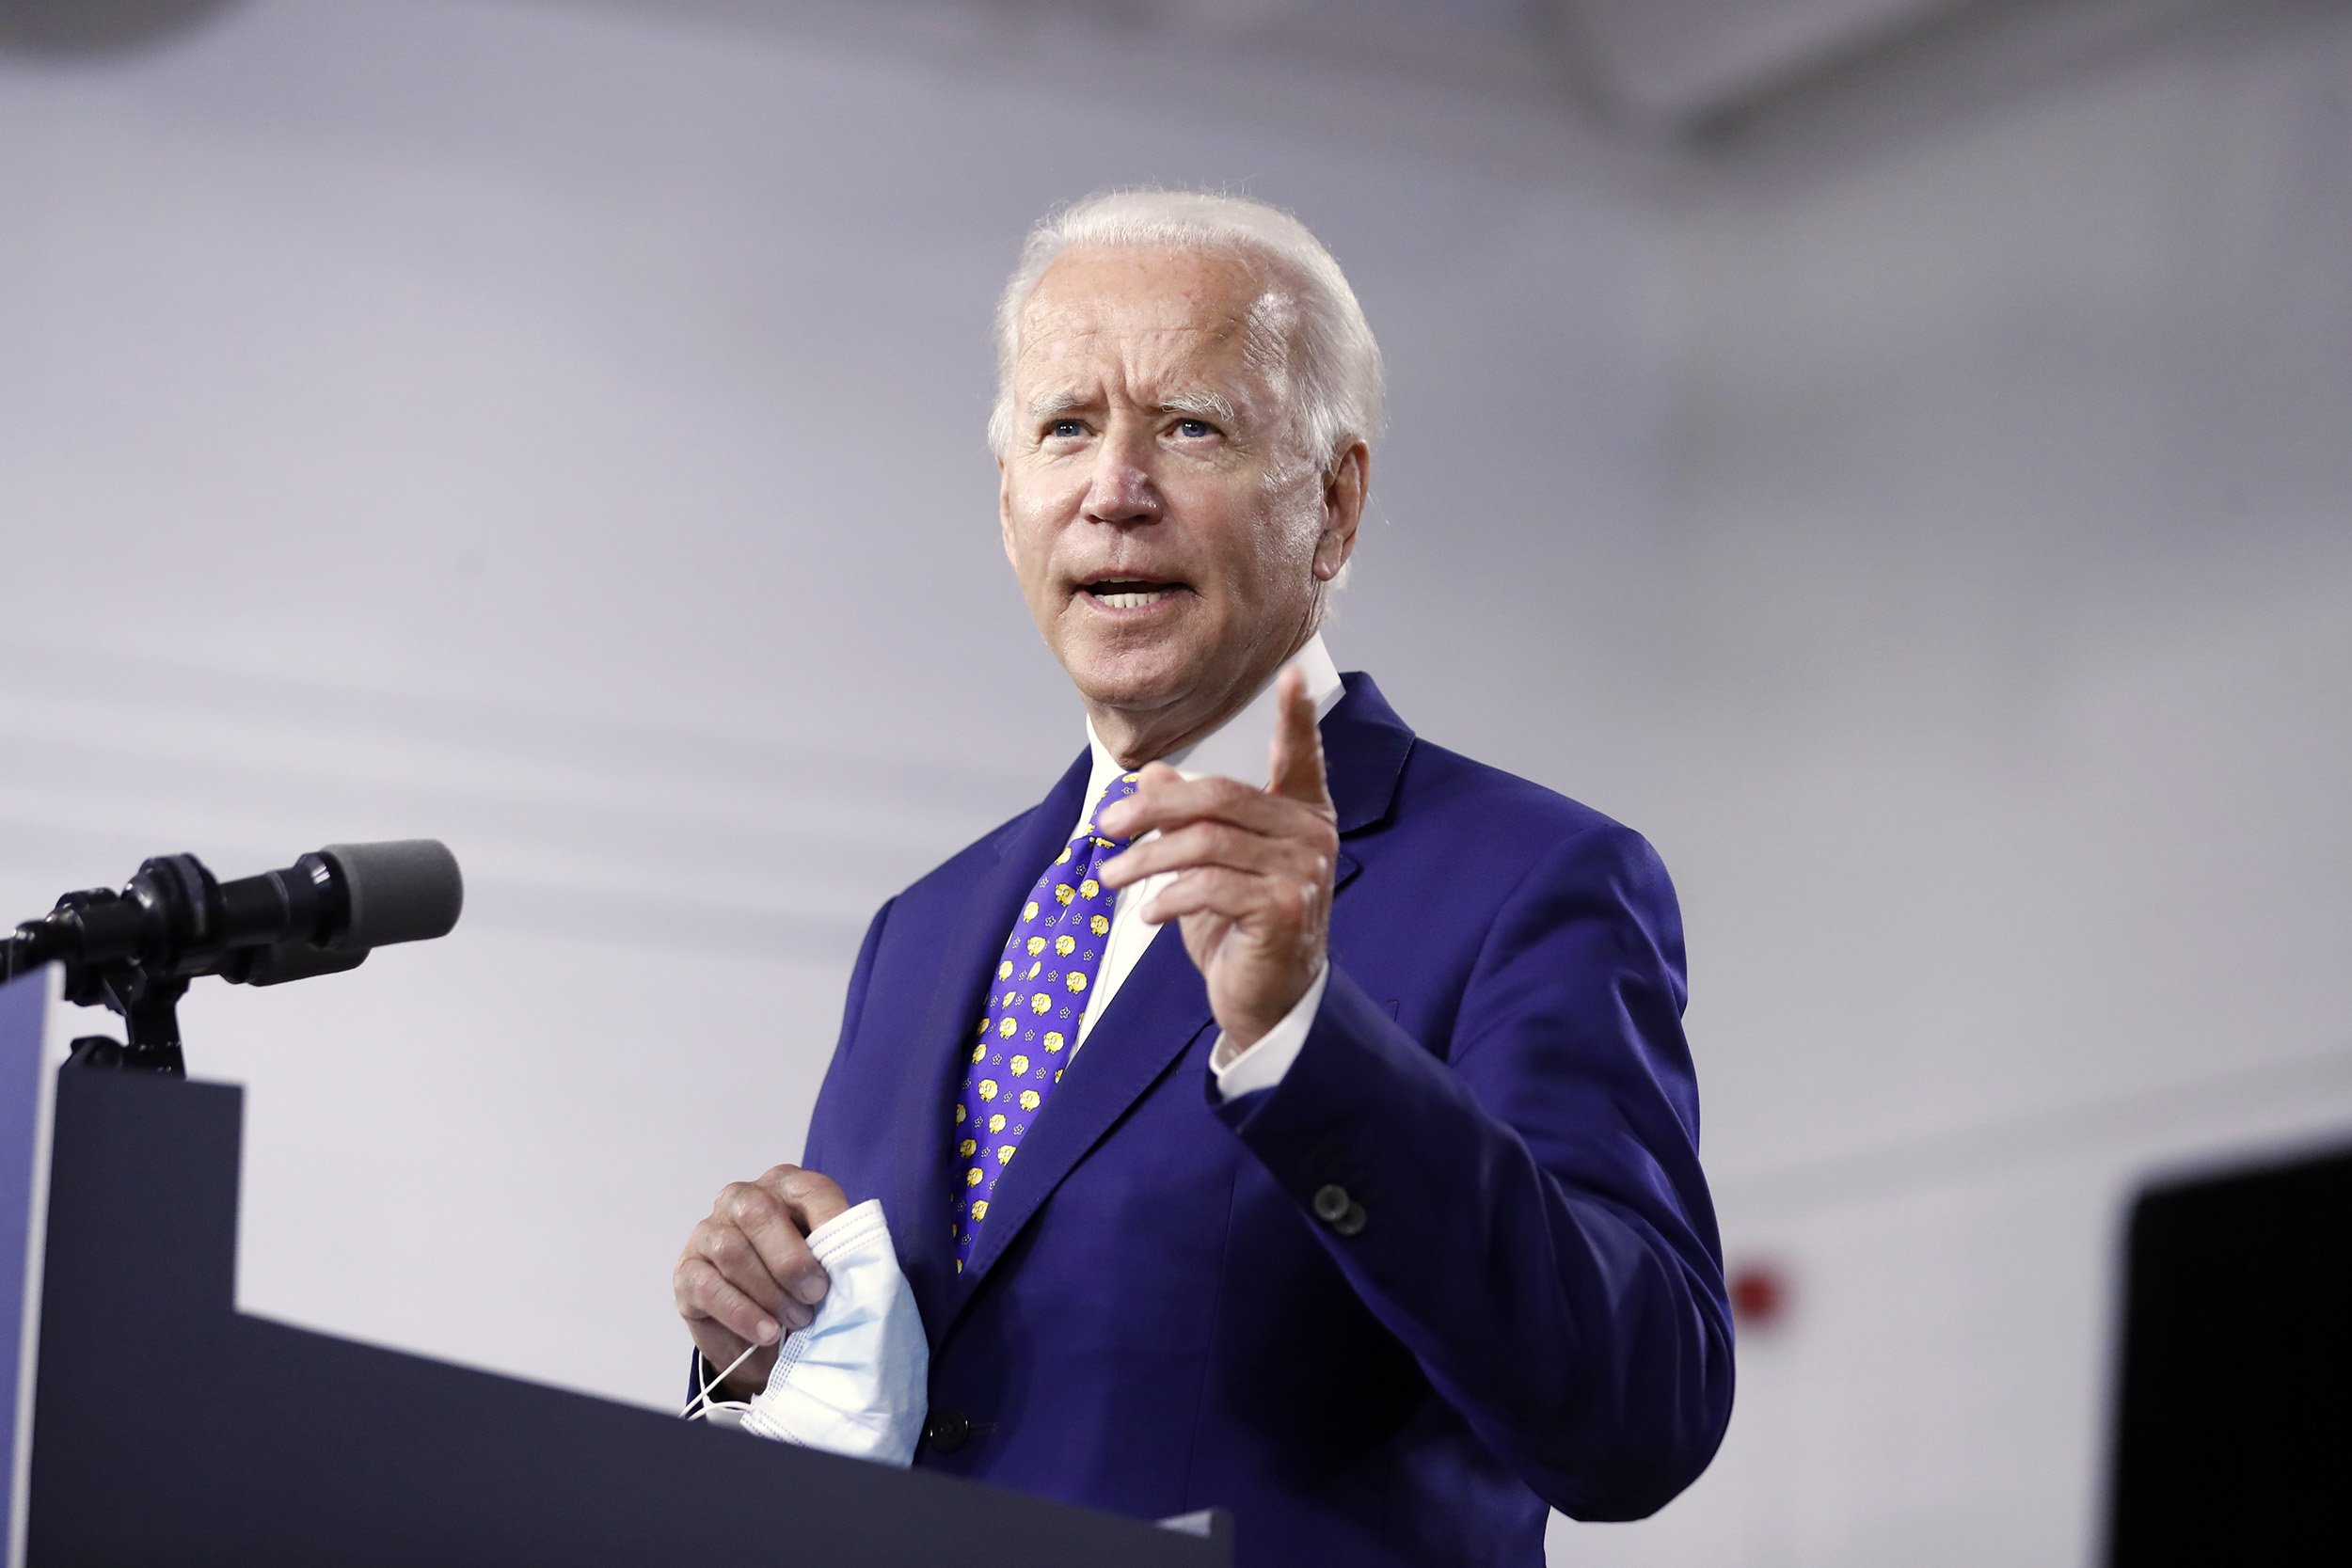 Fact check: Biden says he hasn't taken a cognitive test. Is he flip-flopping?